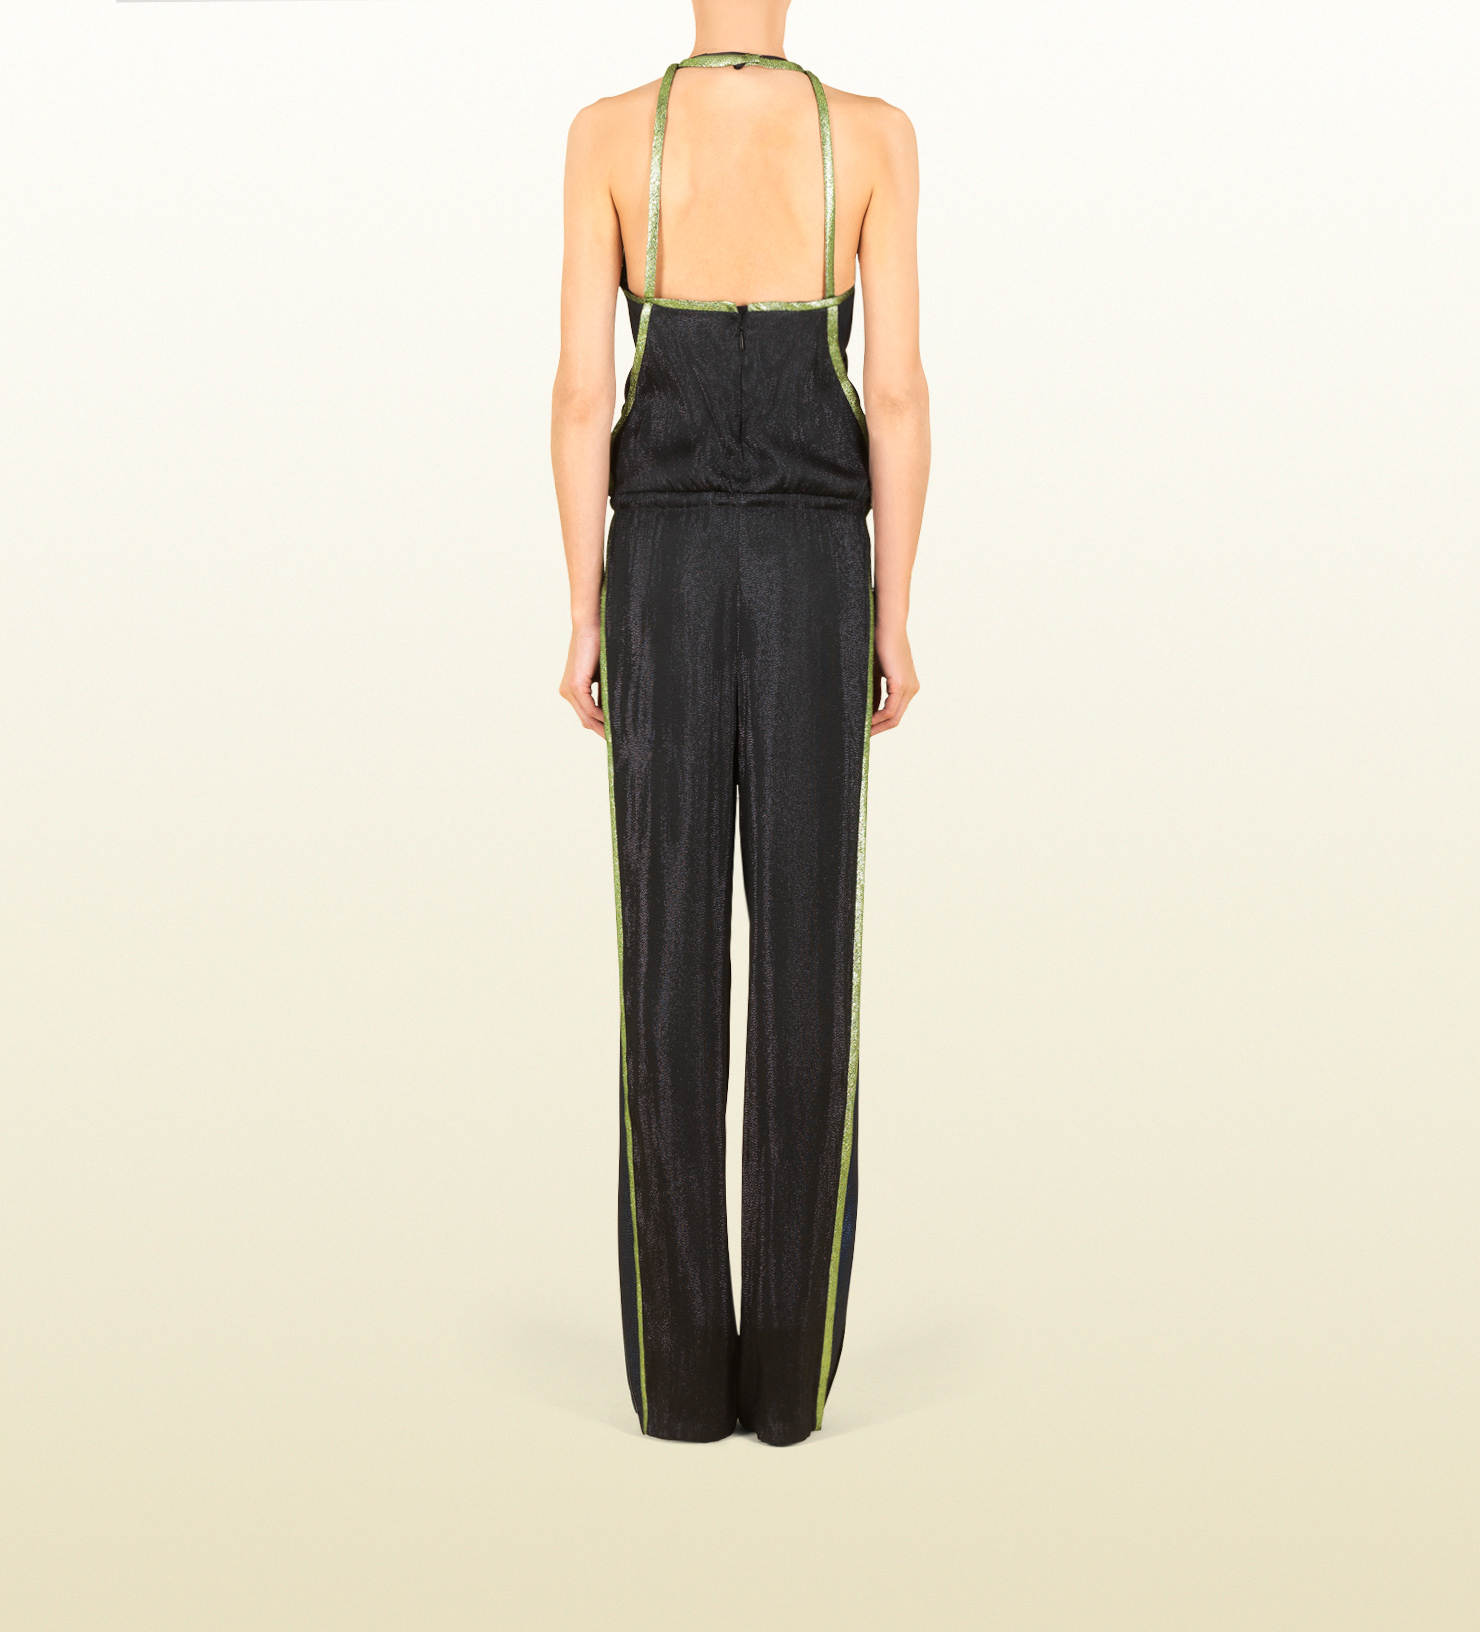 f1715f8e1e4 Lyst - Gucci Black Liquid Lame Jumpsuit in Black